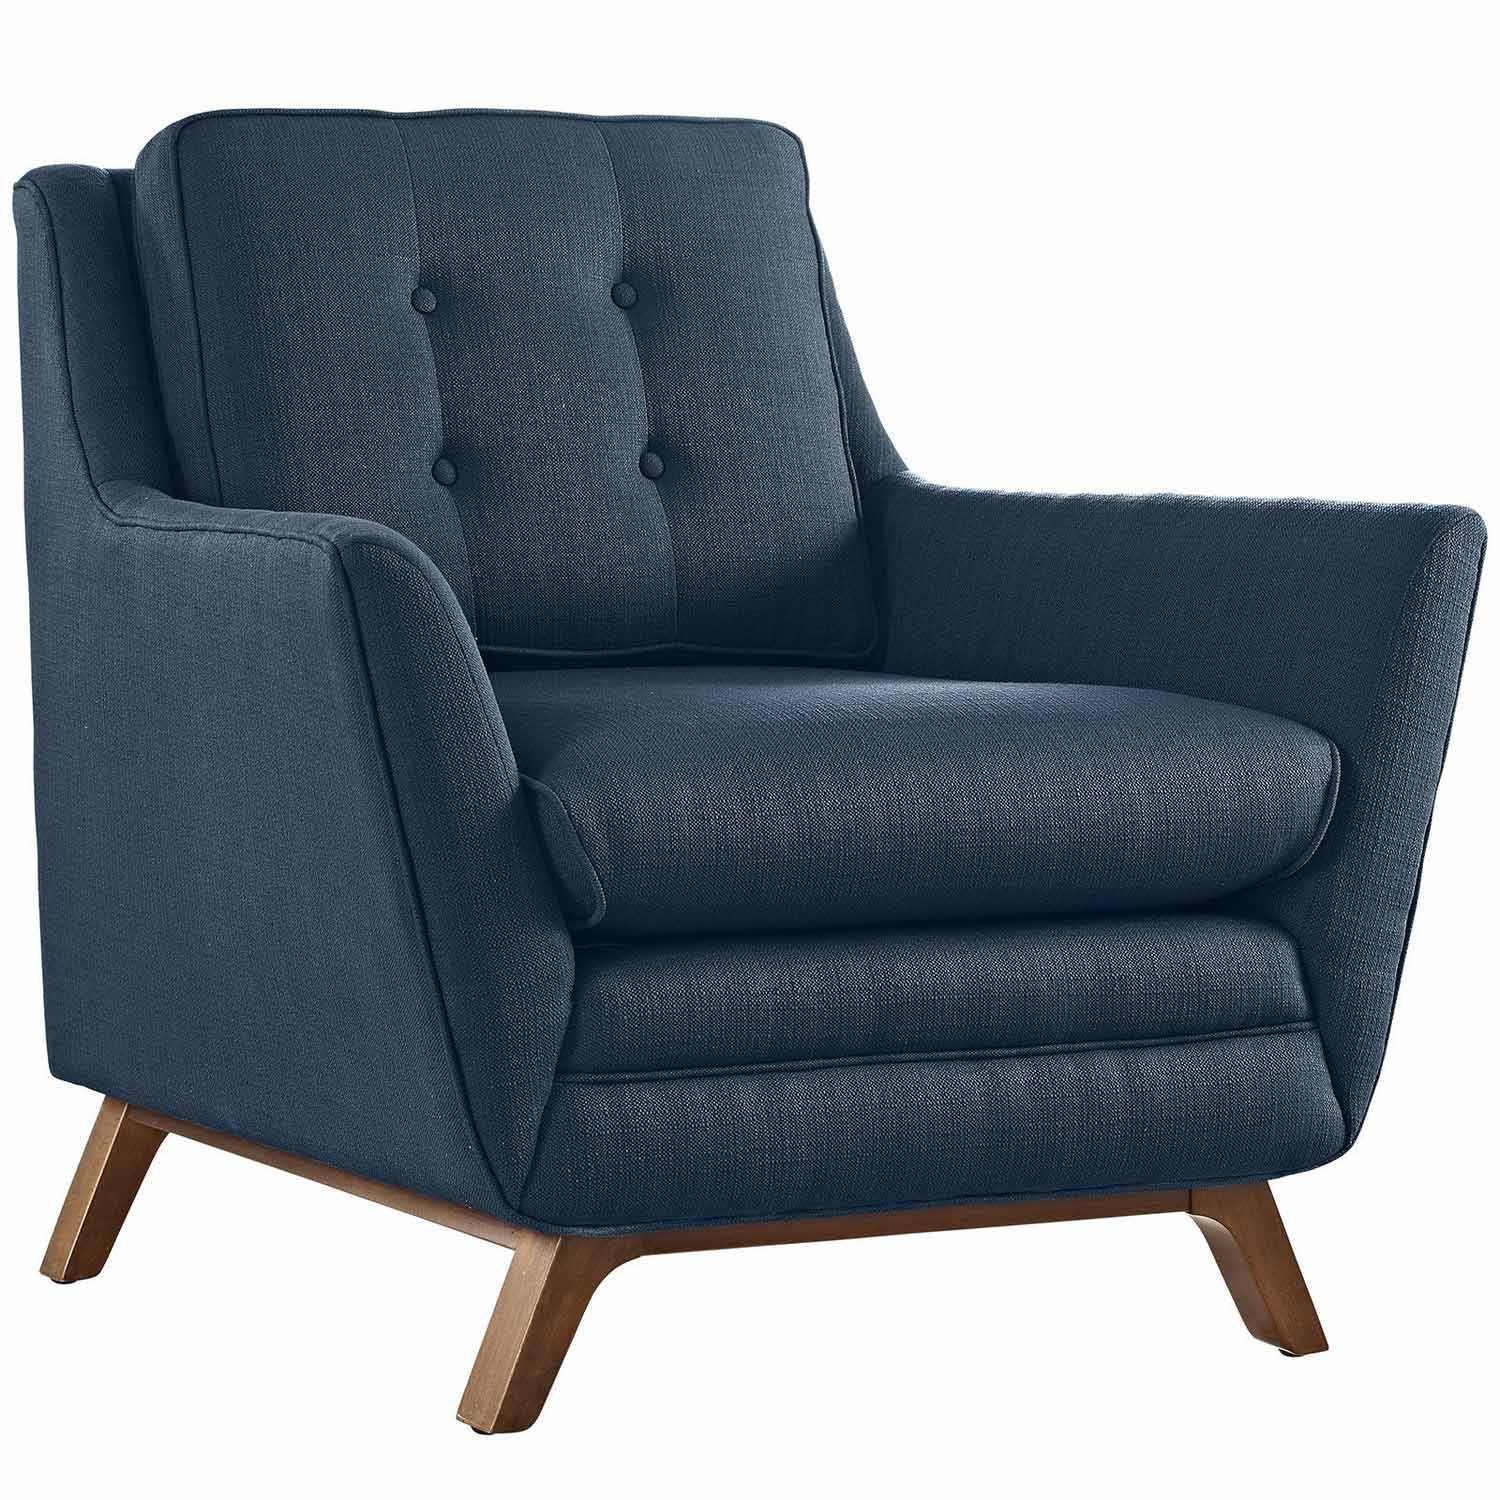 Modway Beguile Fabric Arm Chair - Azure